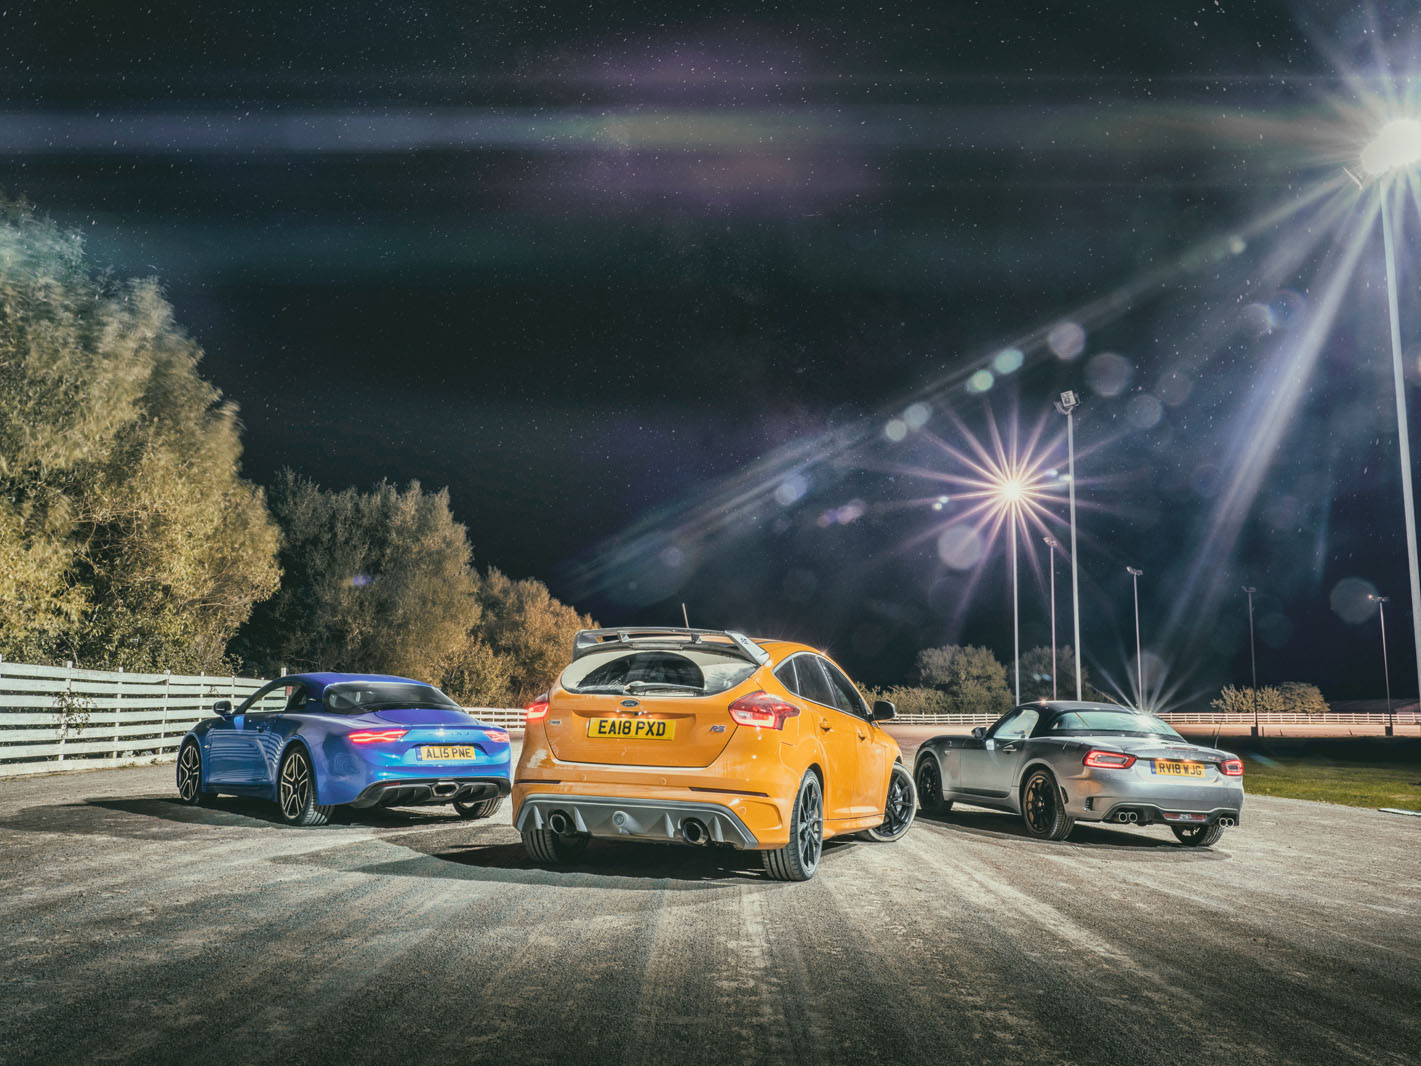 Rally Legends Tested Alpine A110 Vs Abarth 124 Spider Vs Ford Focus Rs